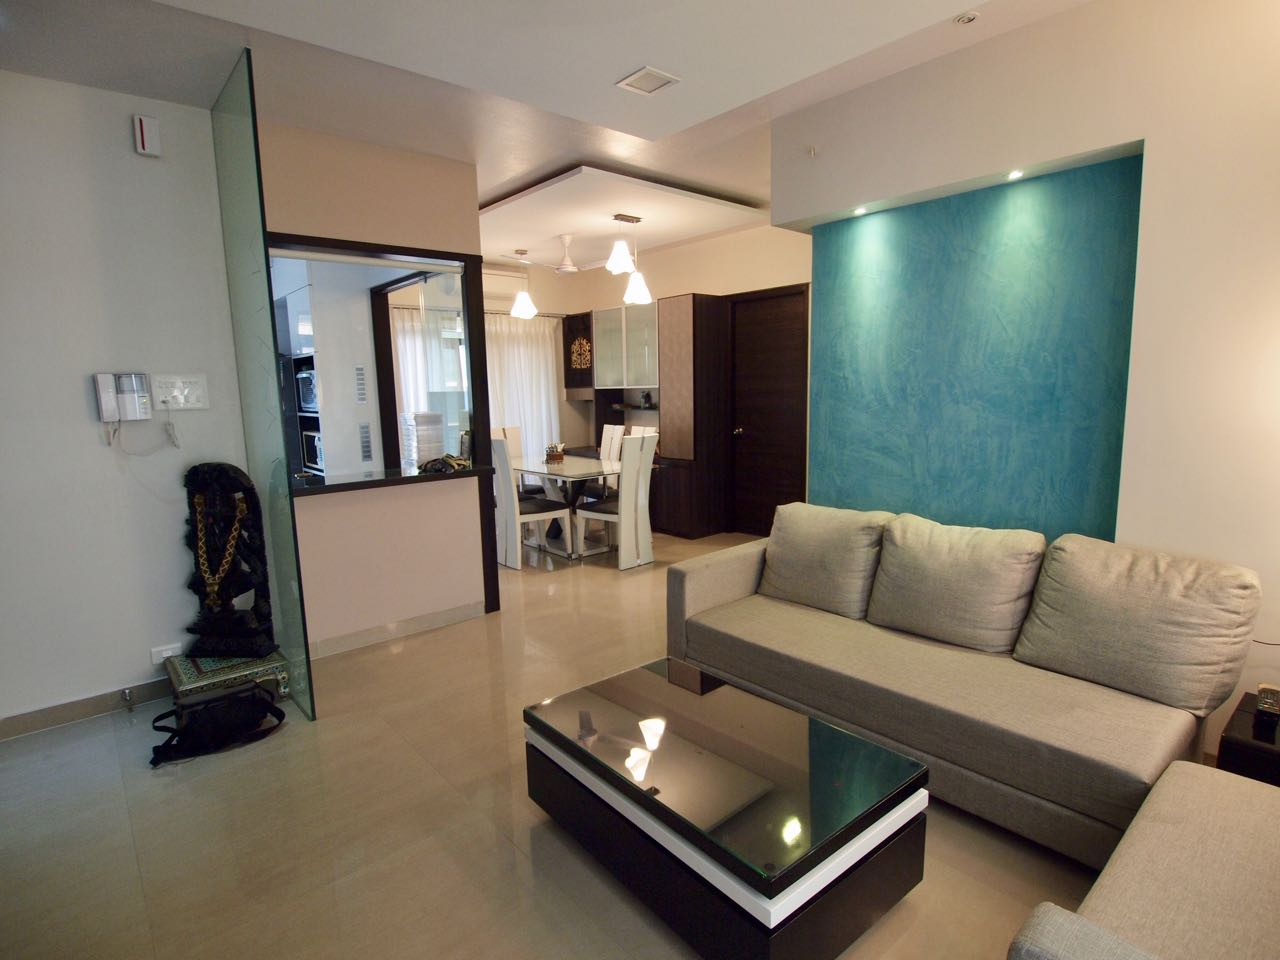 Living Room With Black Centre table And Leather Sofas by Janaki Kumar Raut Living-room Contemporary   Interior Design Photos & Ideas